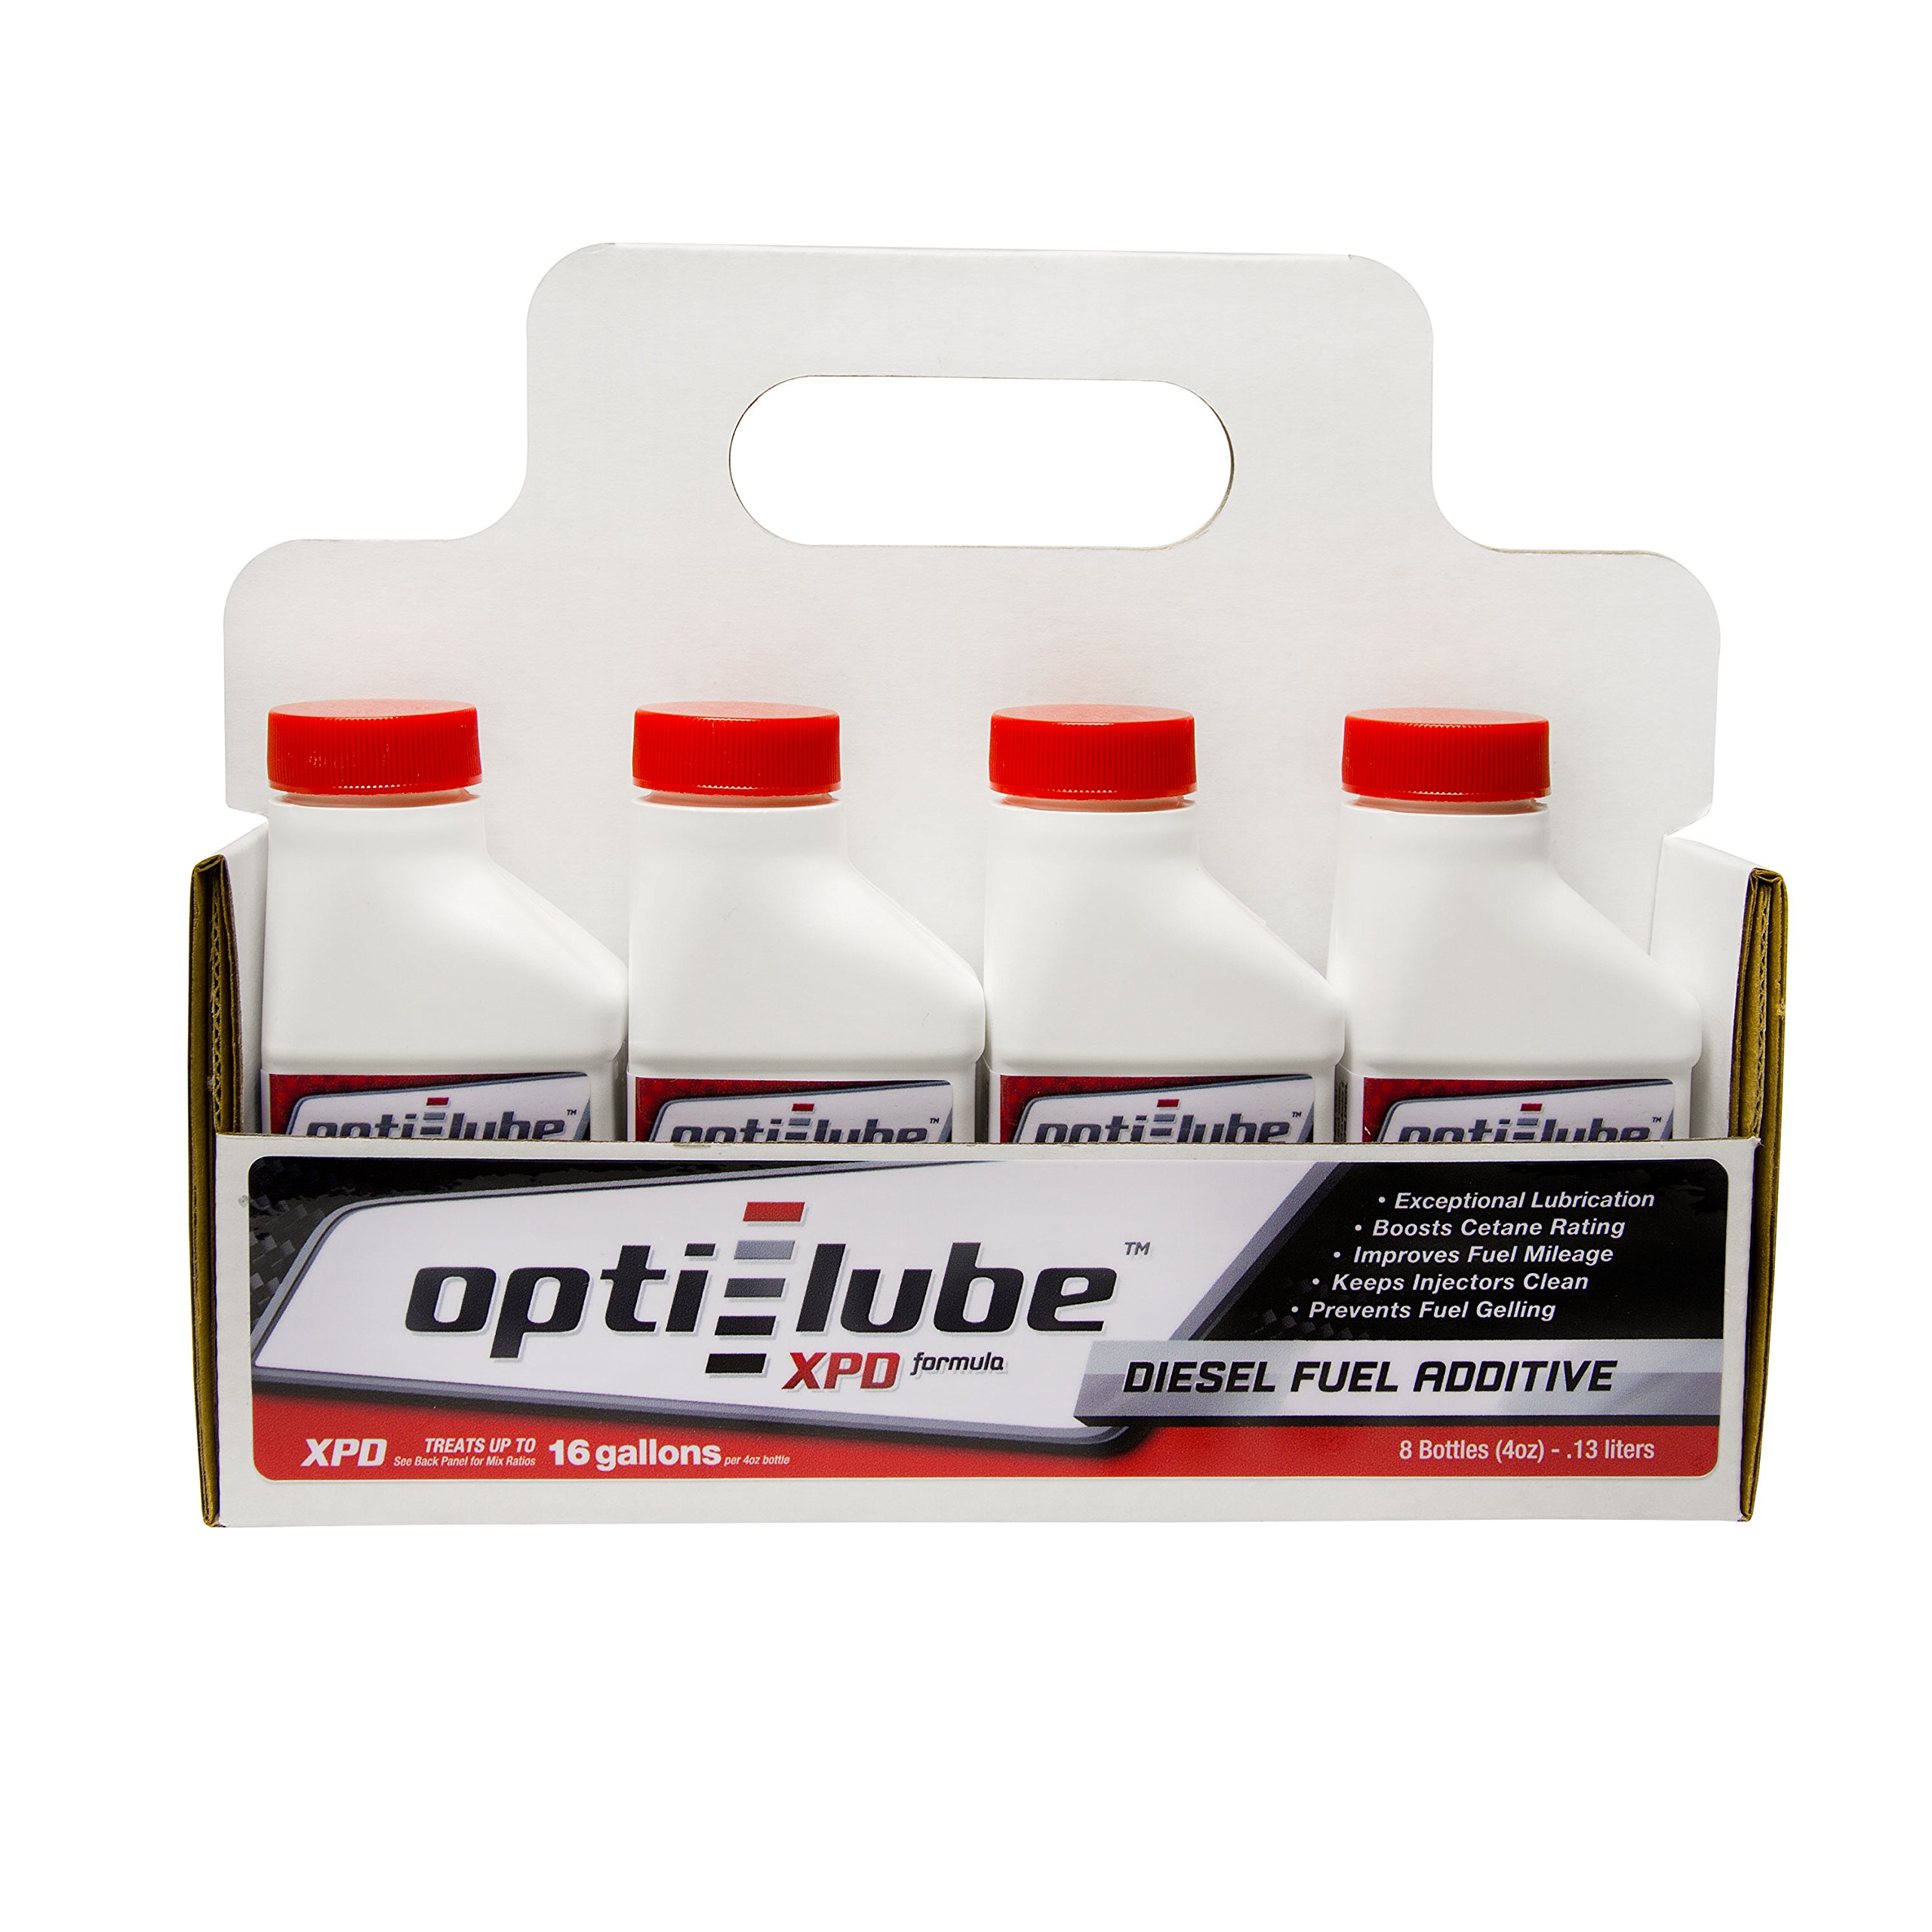 Opti-Lube XPD Formula Diesel Fuel Additive: 4oz 8 pack Treats up to 16 Gallons per 4oz bottle